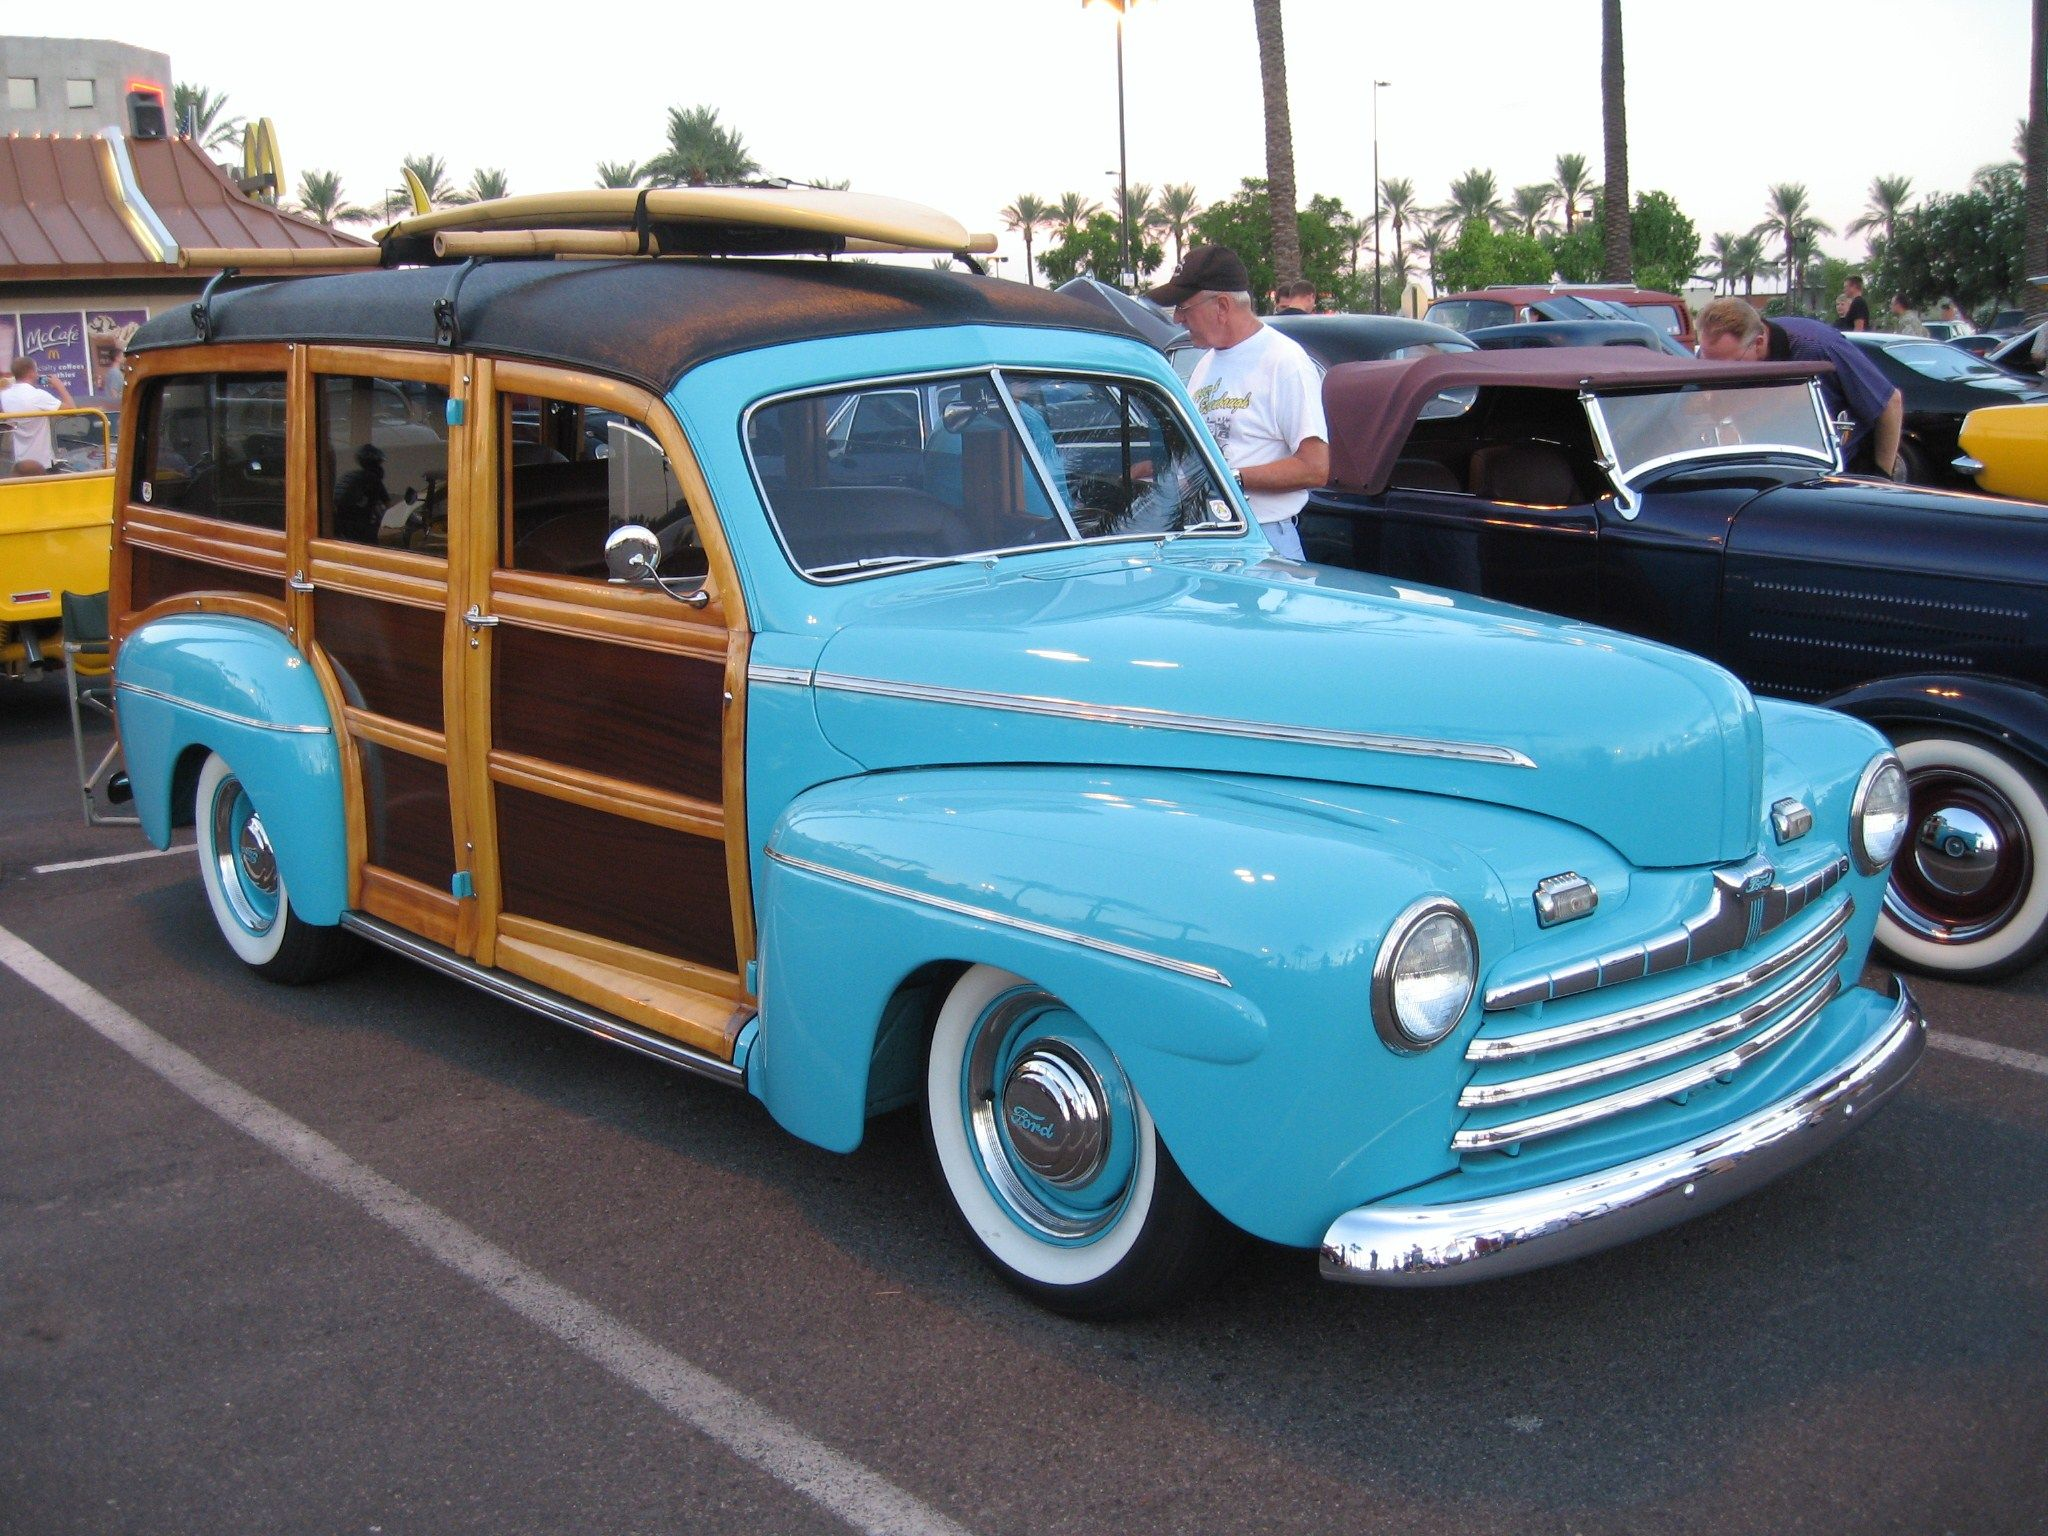 1946 Ford Woody Station Wagon | Station wagon, Cars and Ford